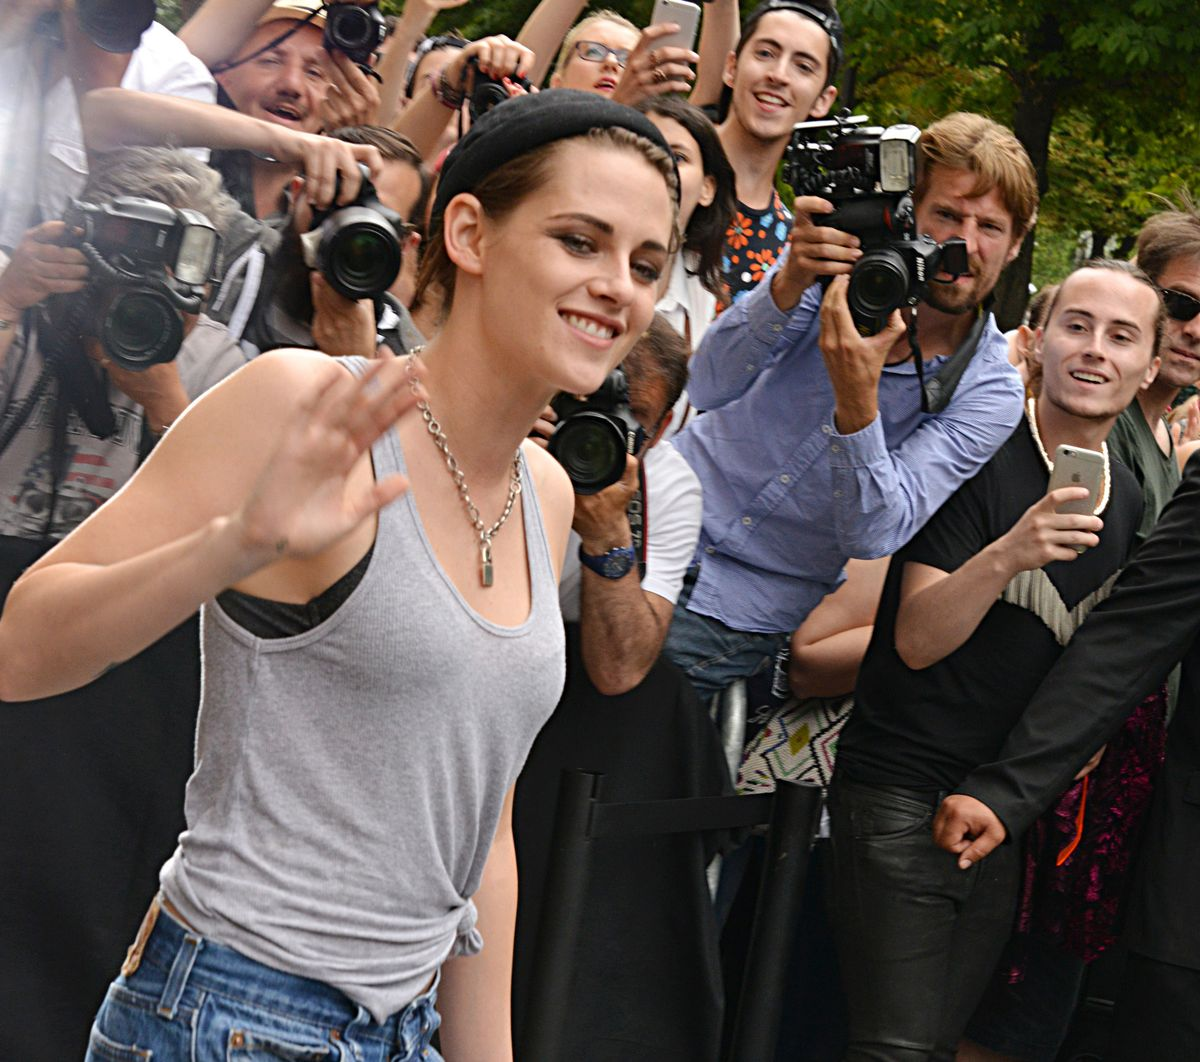 PARIS, FRANCE - JULY 07: Kristen Stewart leaves  the Chanel show as part of Paris Fashion Week Haute Couture Fall/Winter 2015/2016 on July 7, 2015 in Paris, France. (Photo by Foc Kan/WireImage)